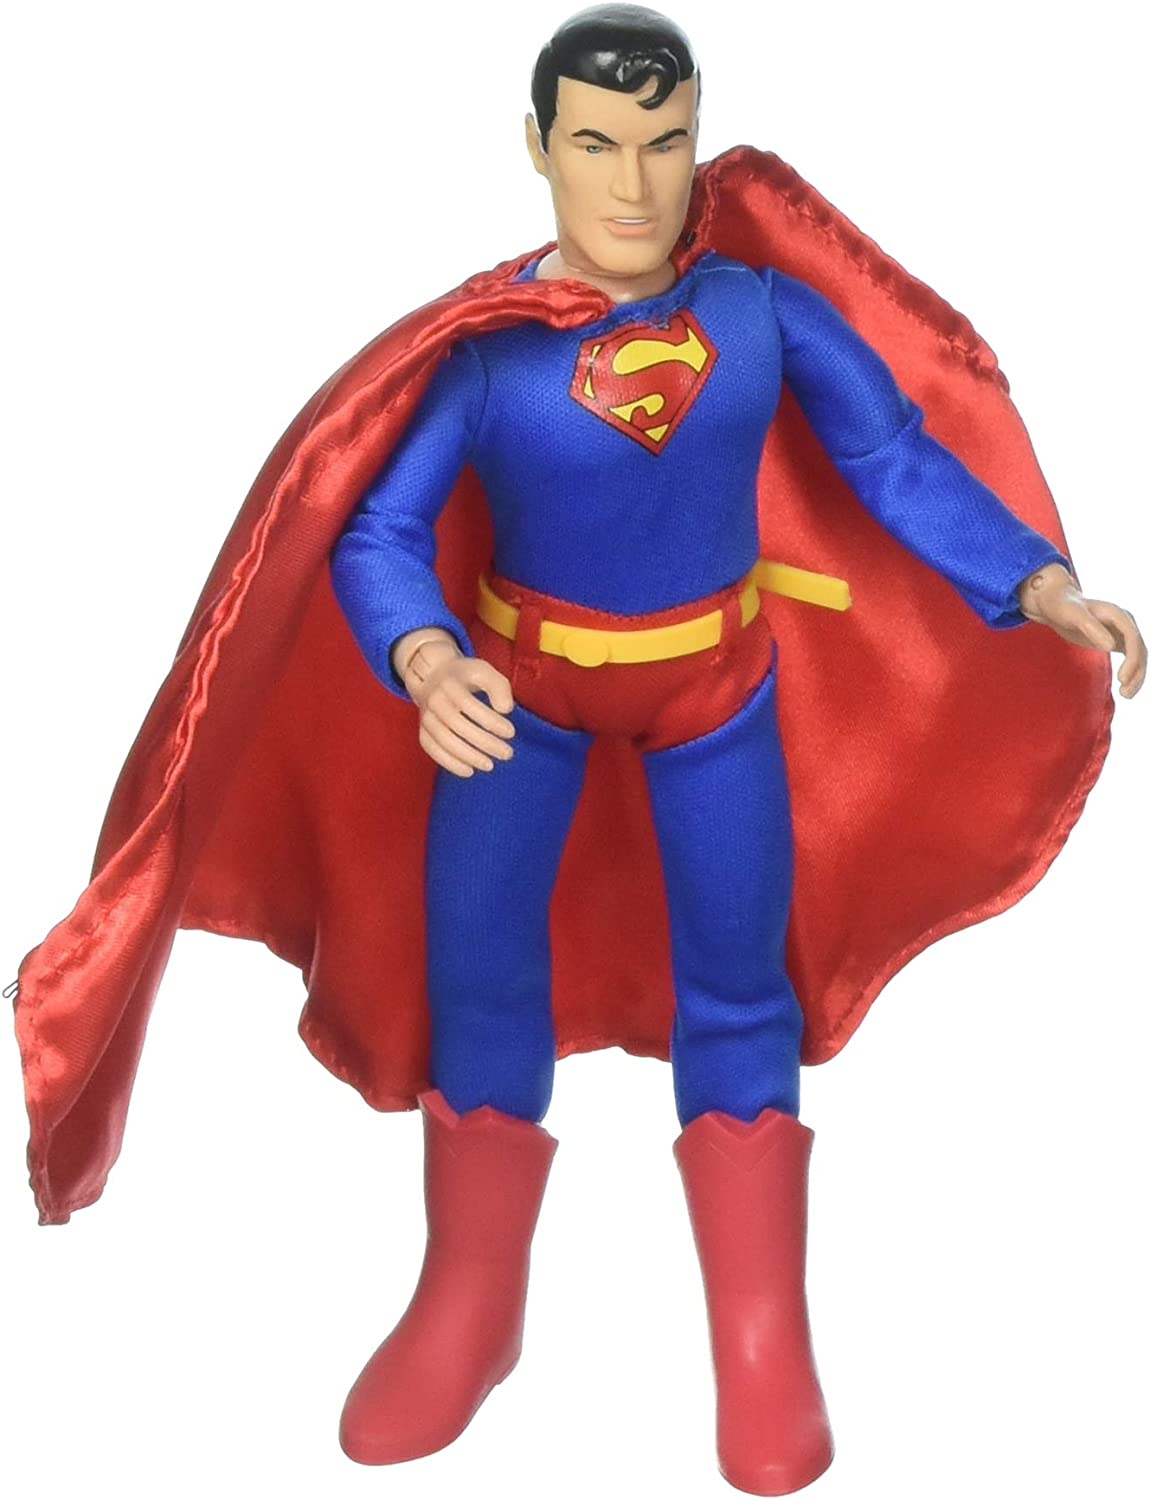 Super Friends Retro 8 Inch Action Figures Series 1  Superman by Figures Toy Company